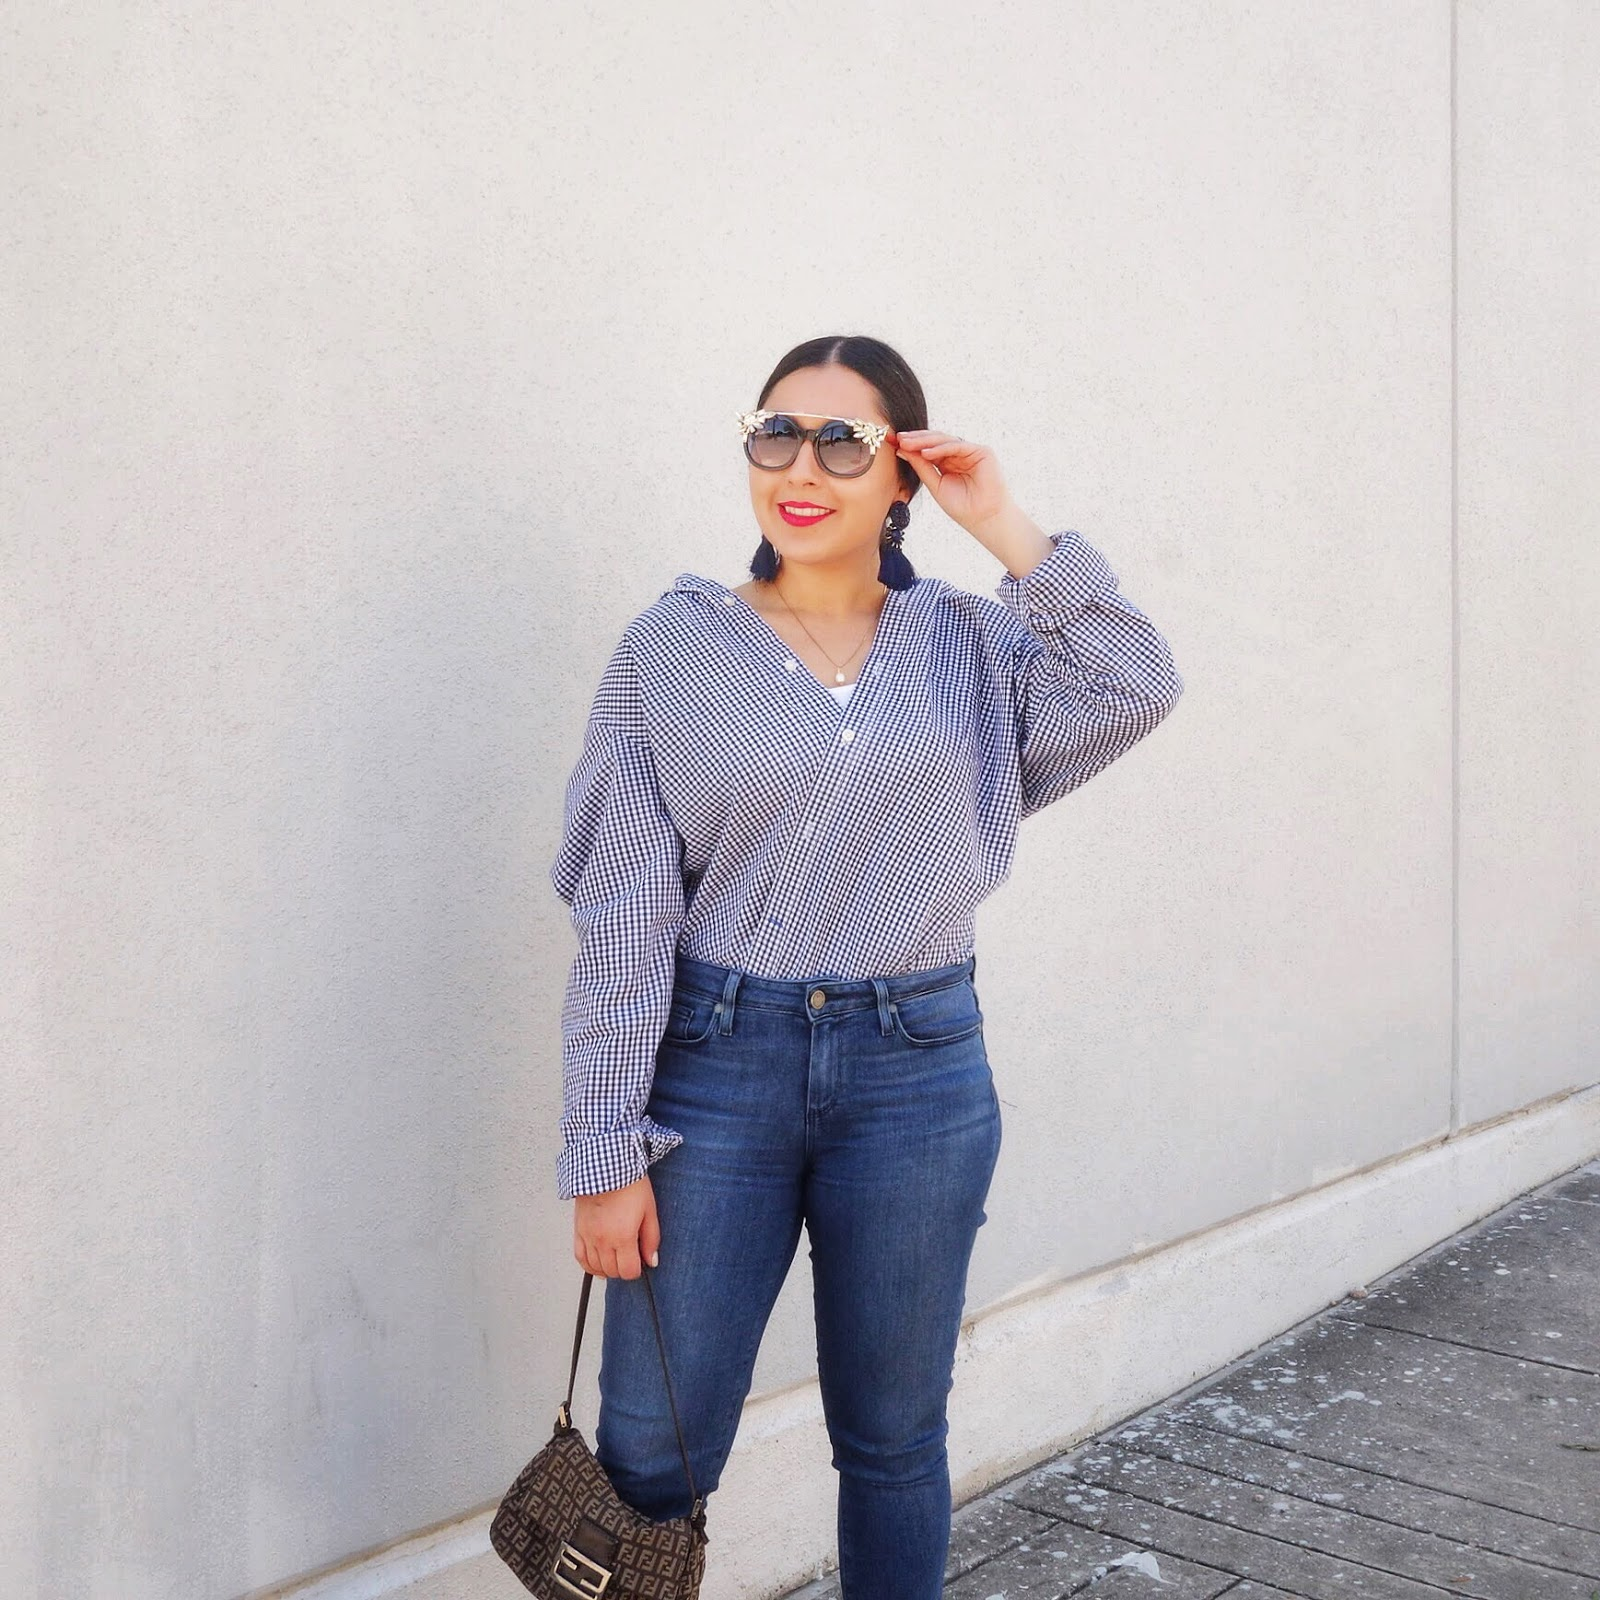 Boyfriend Shirt, How to wear Boyfriend Shirt, Wrap and Tuck